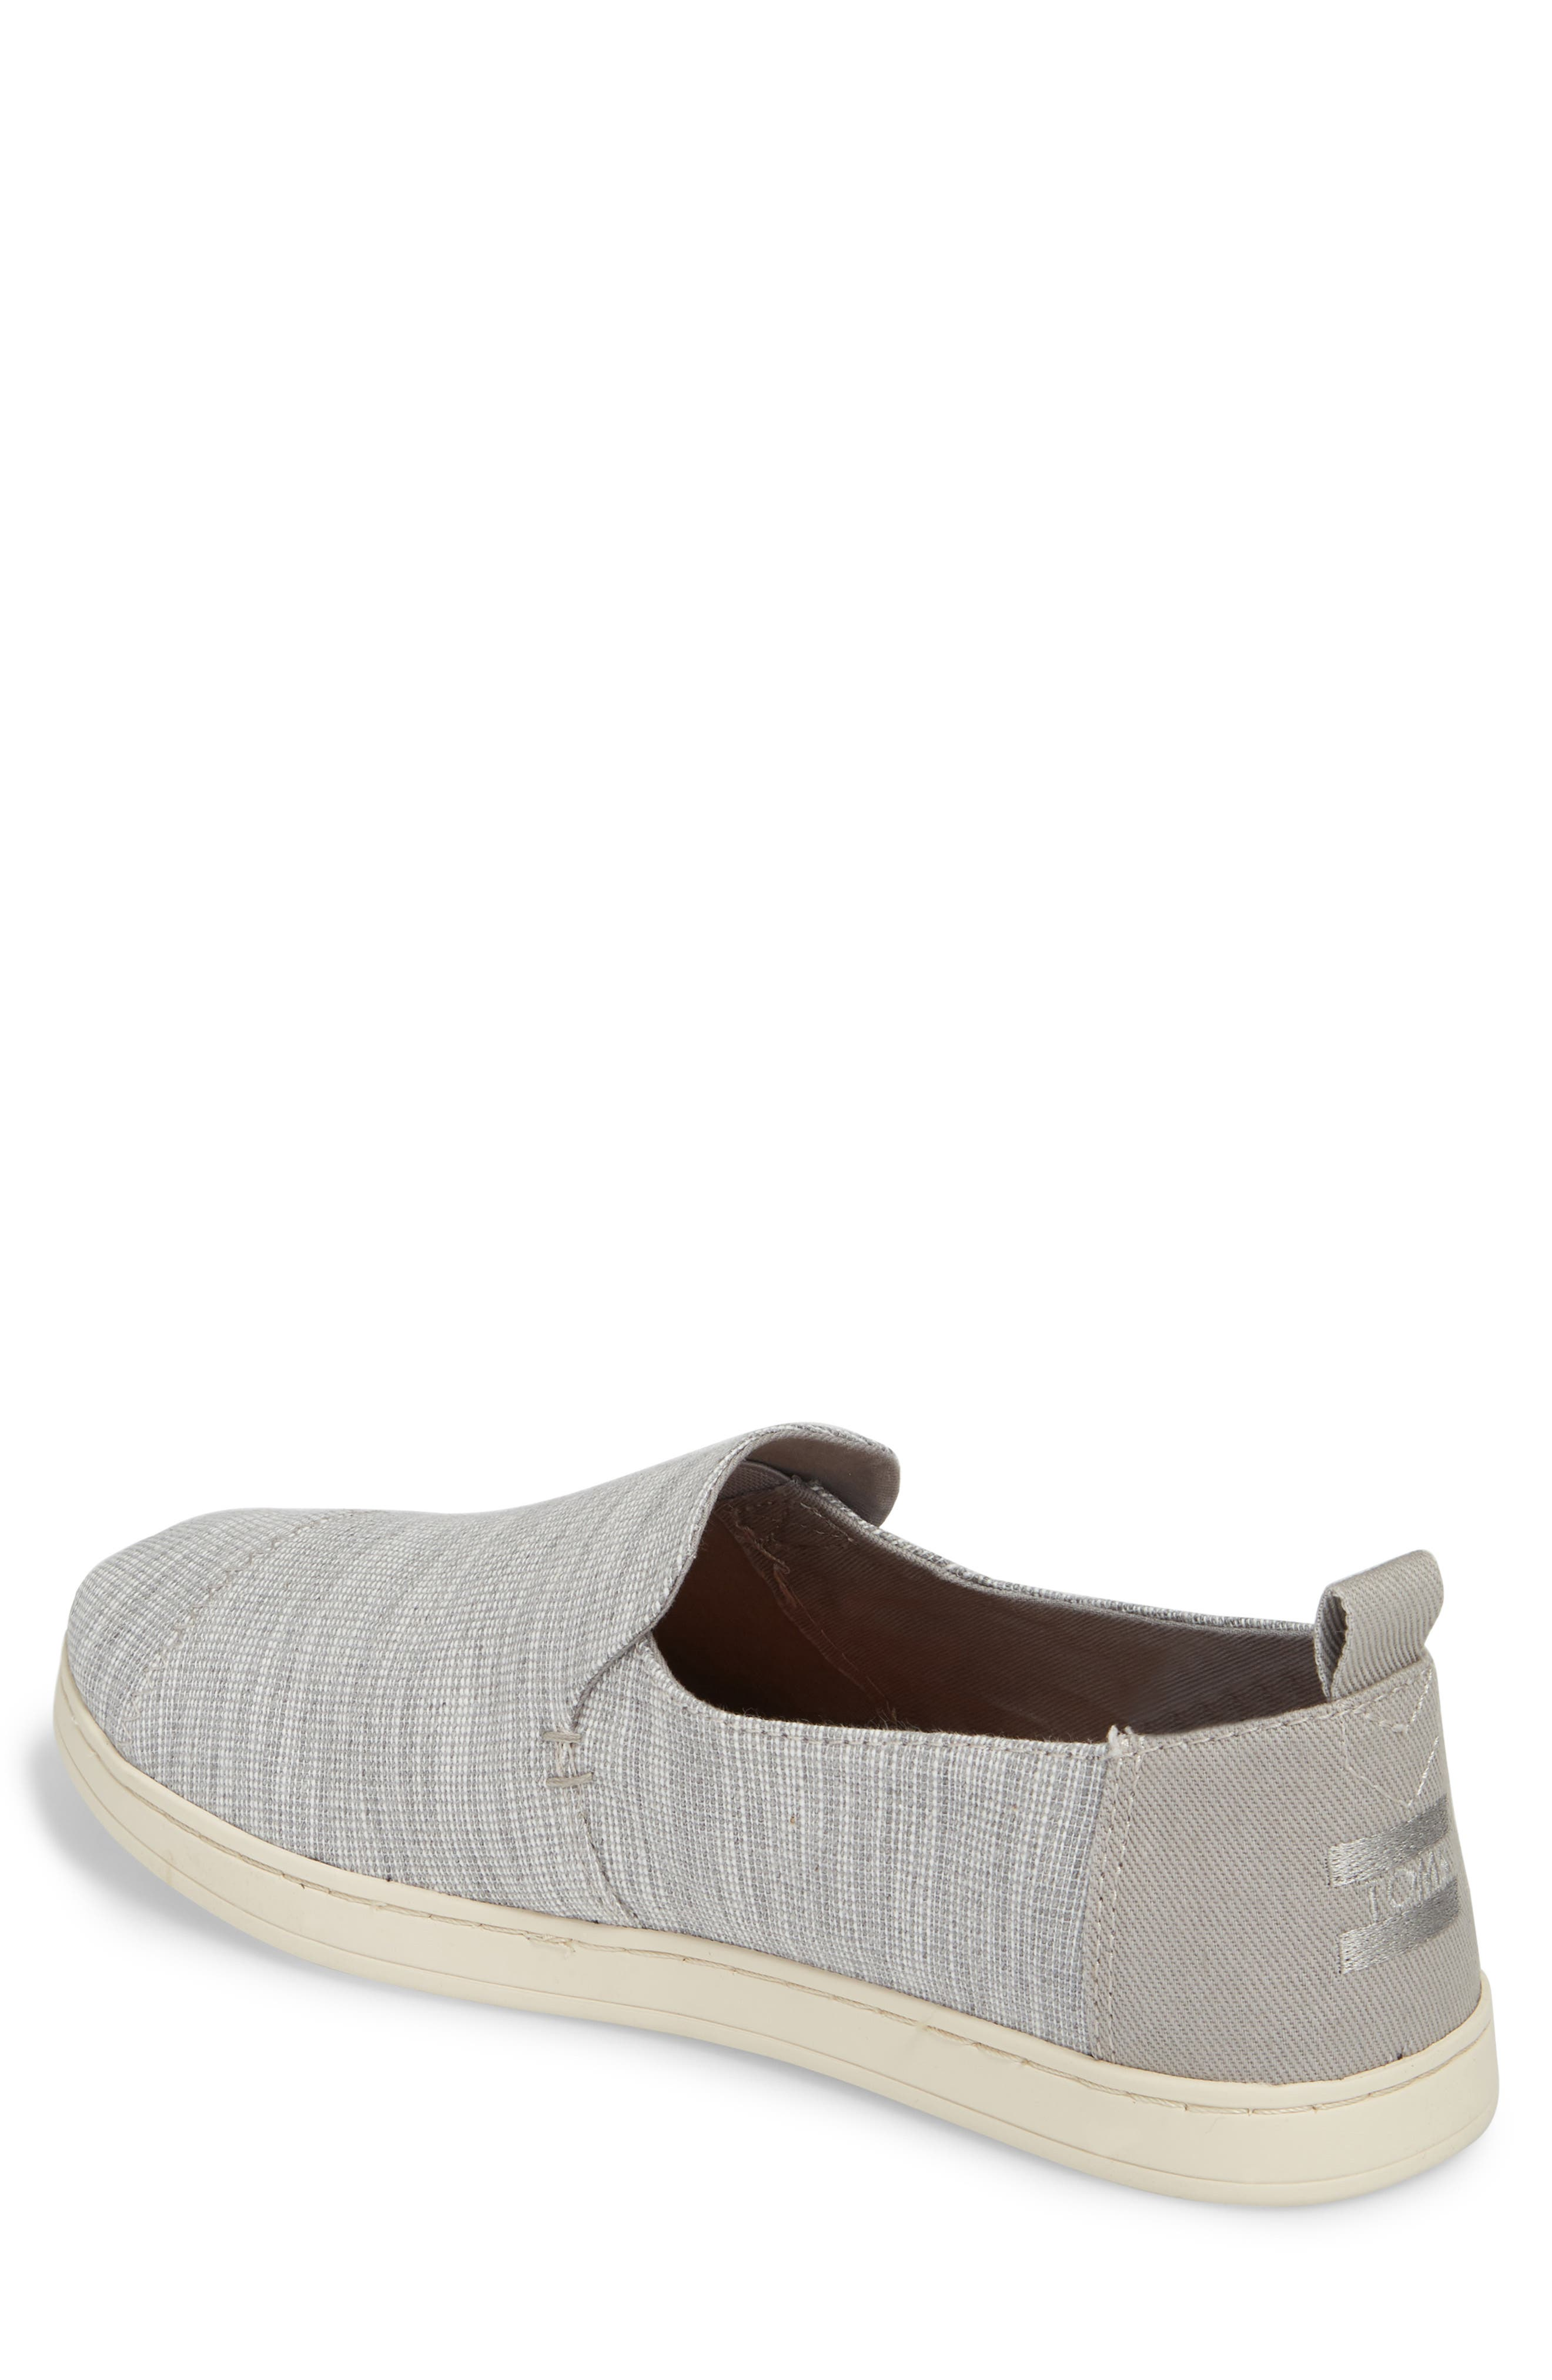 Deconstructed Alpargata Slip-On,                             Alternate thumbnail 2, color,                             Drizzle Striped Chambray